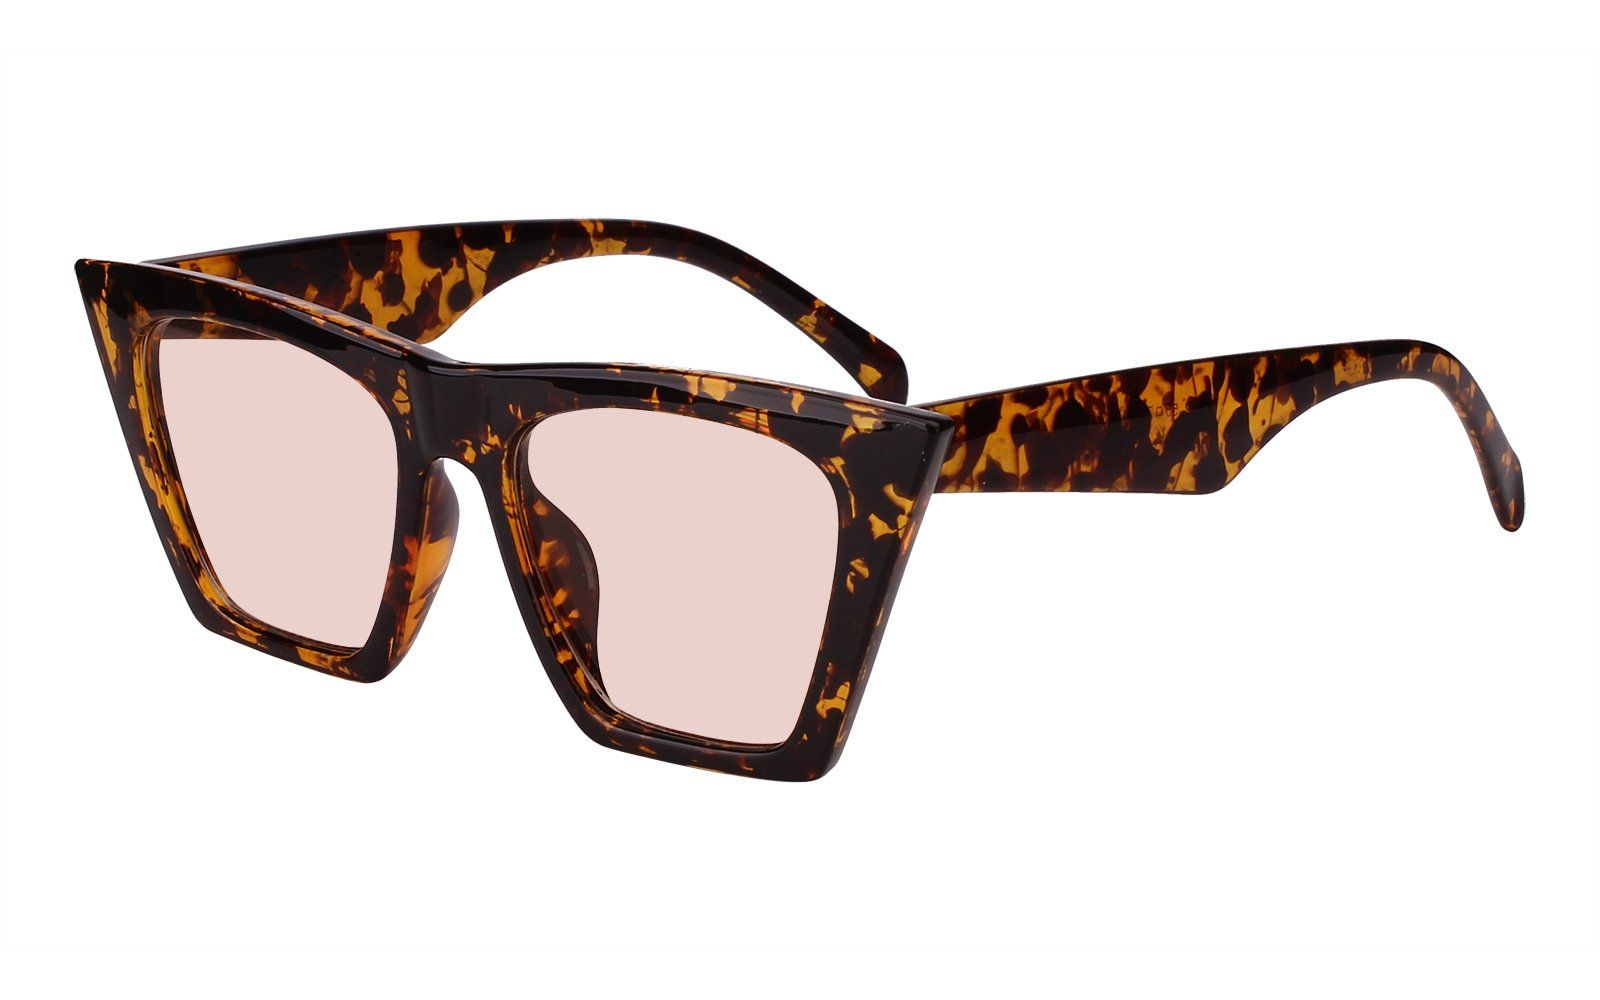 7a913feea Beison Mens Womens Square Mod Fashion Sunglasses Tinted Lens Tortoise frame  / Light brown lens 55 ** You can get additional details at the image link.